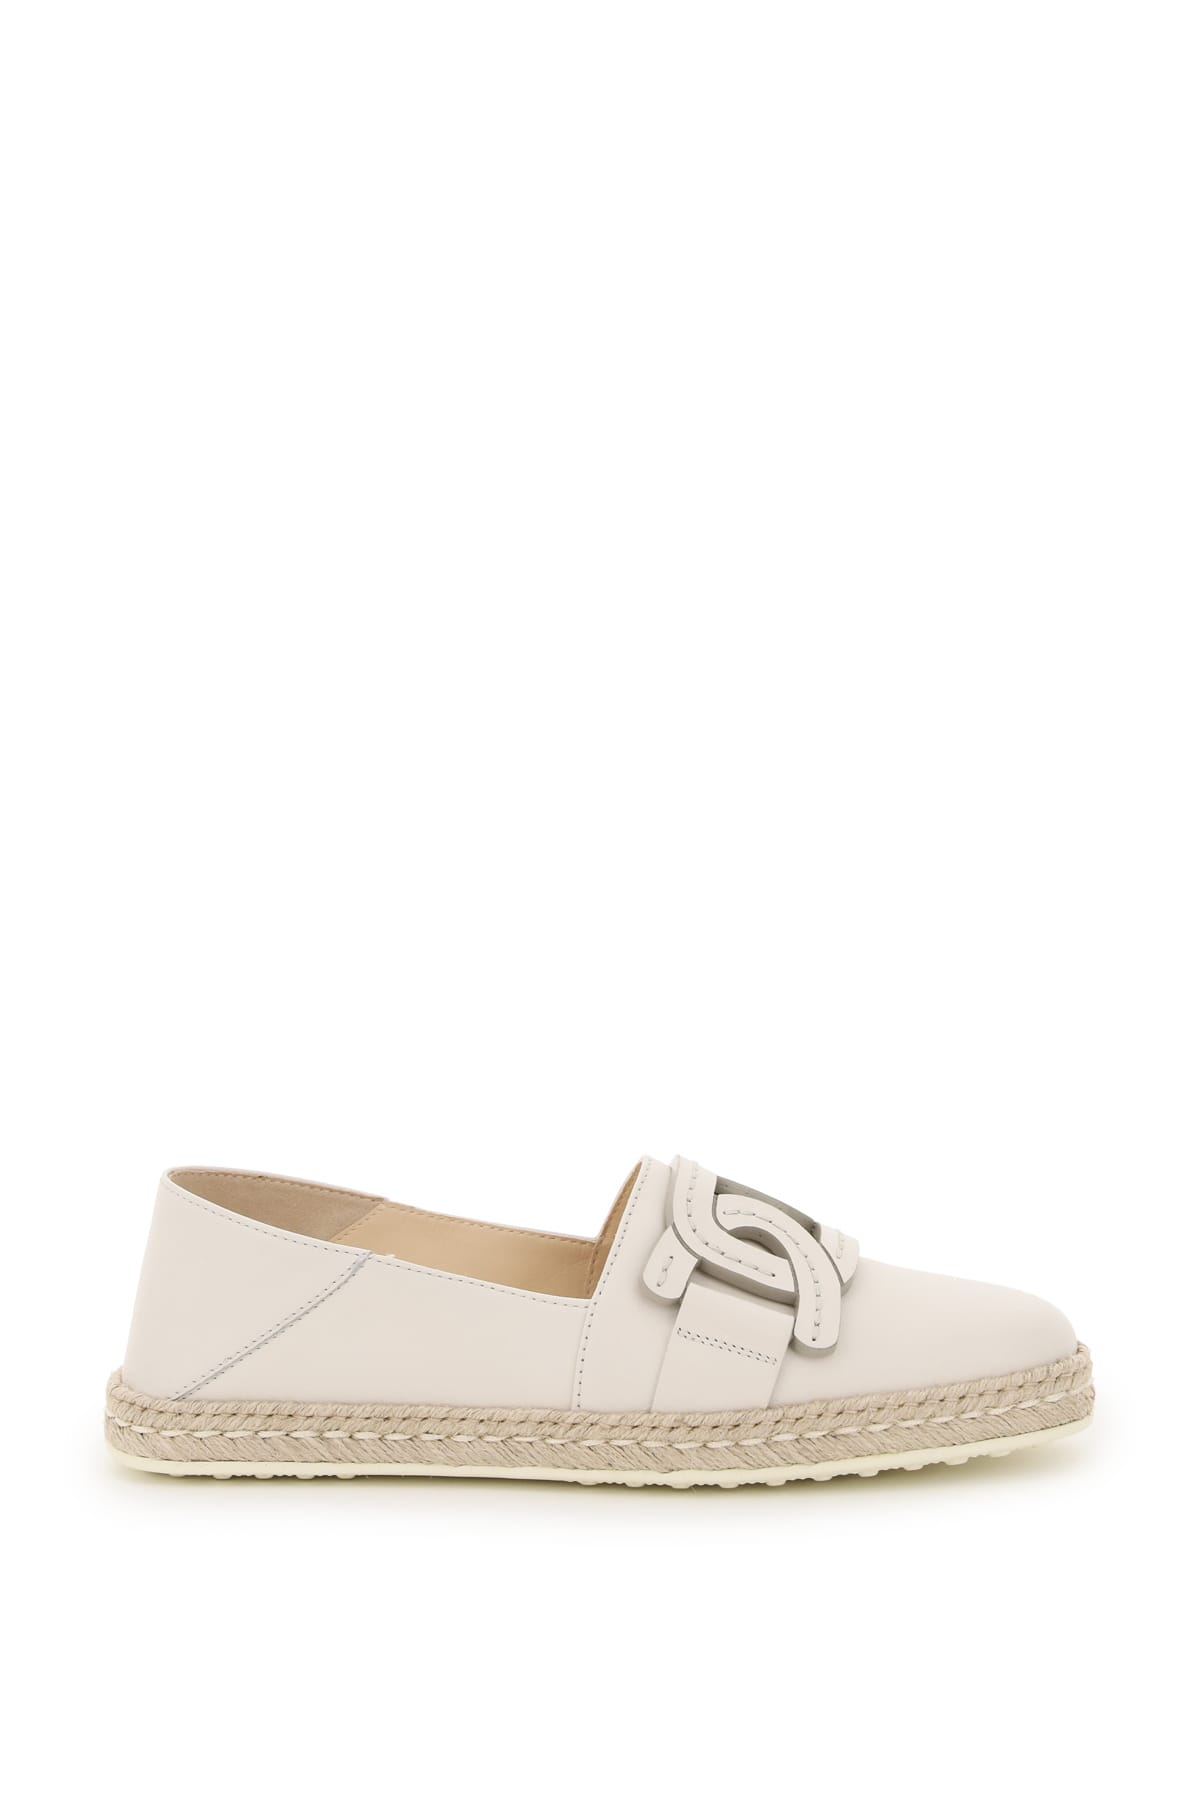 Tods Leather Espadrilles Chain